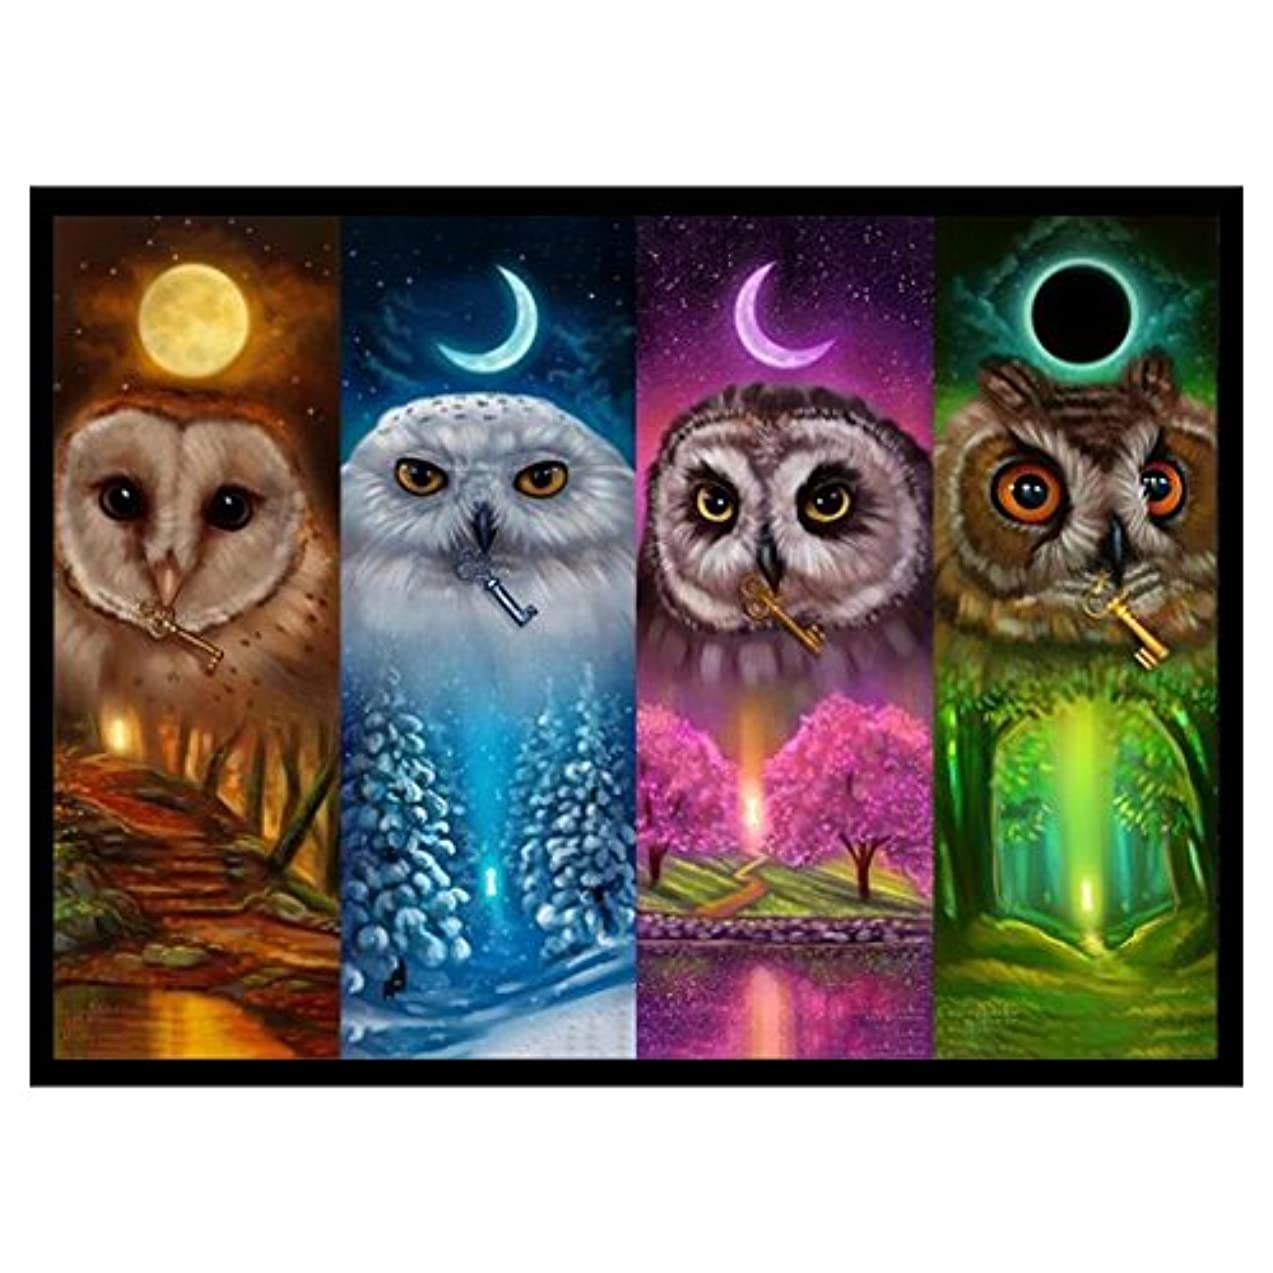 URlighting DIY 5D Diamond Painting Kits for Adults by Number Kits, Full Drill Embroidery Rhinestone Cross Stitch Arts Craft Canvas for Home Wall Decoration, 16 x 12 inch (Four Owls)